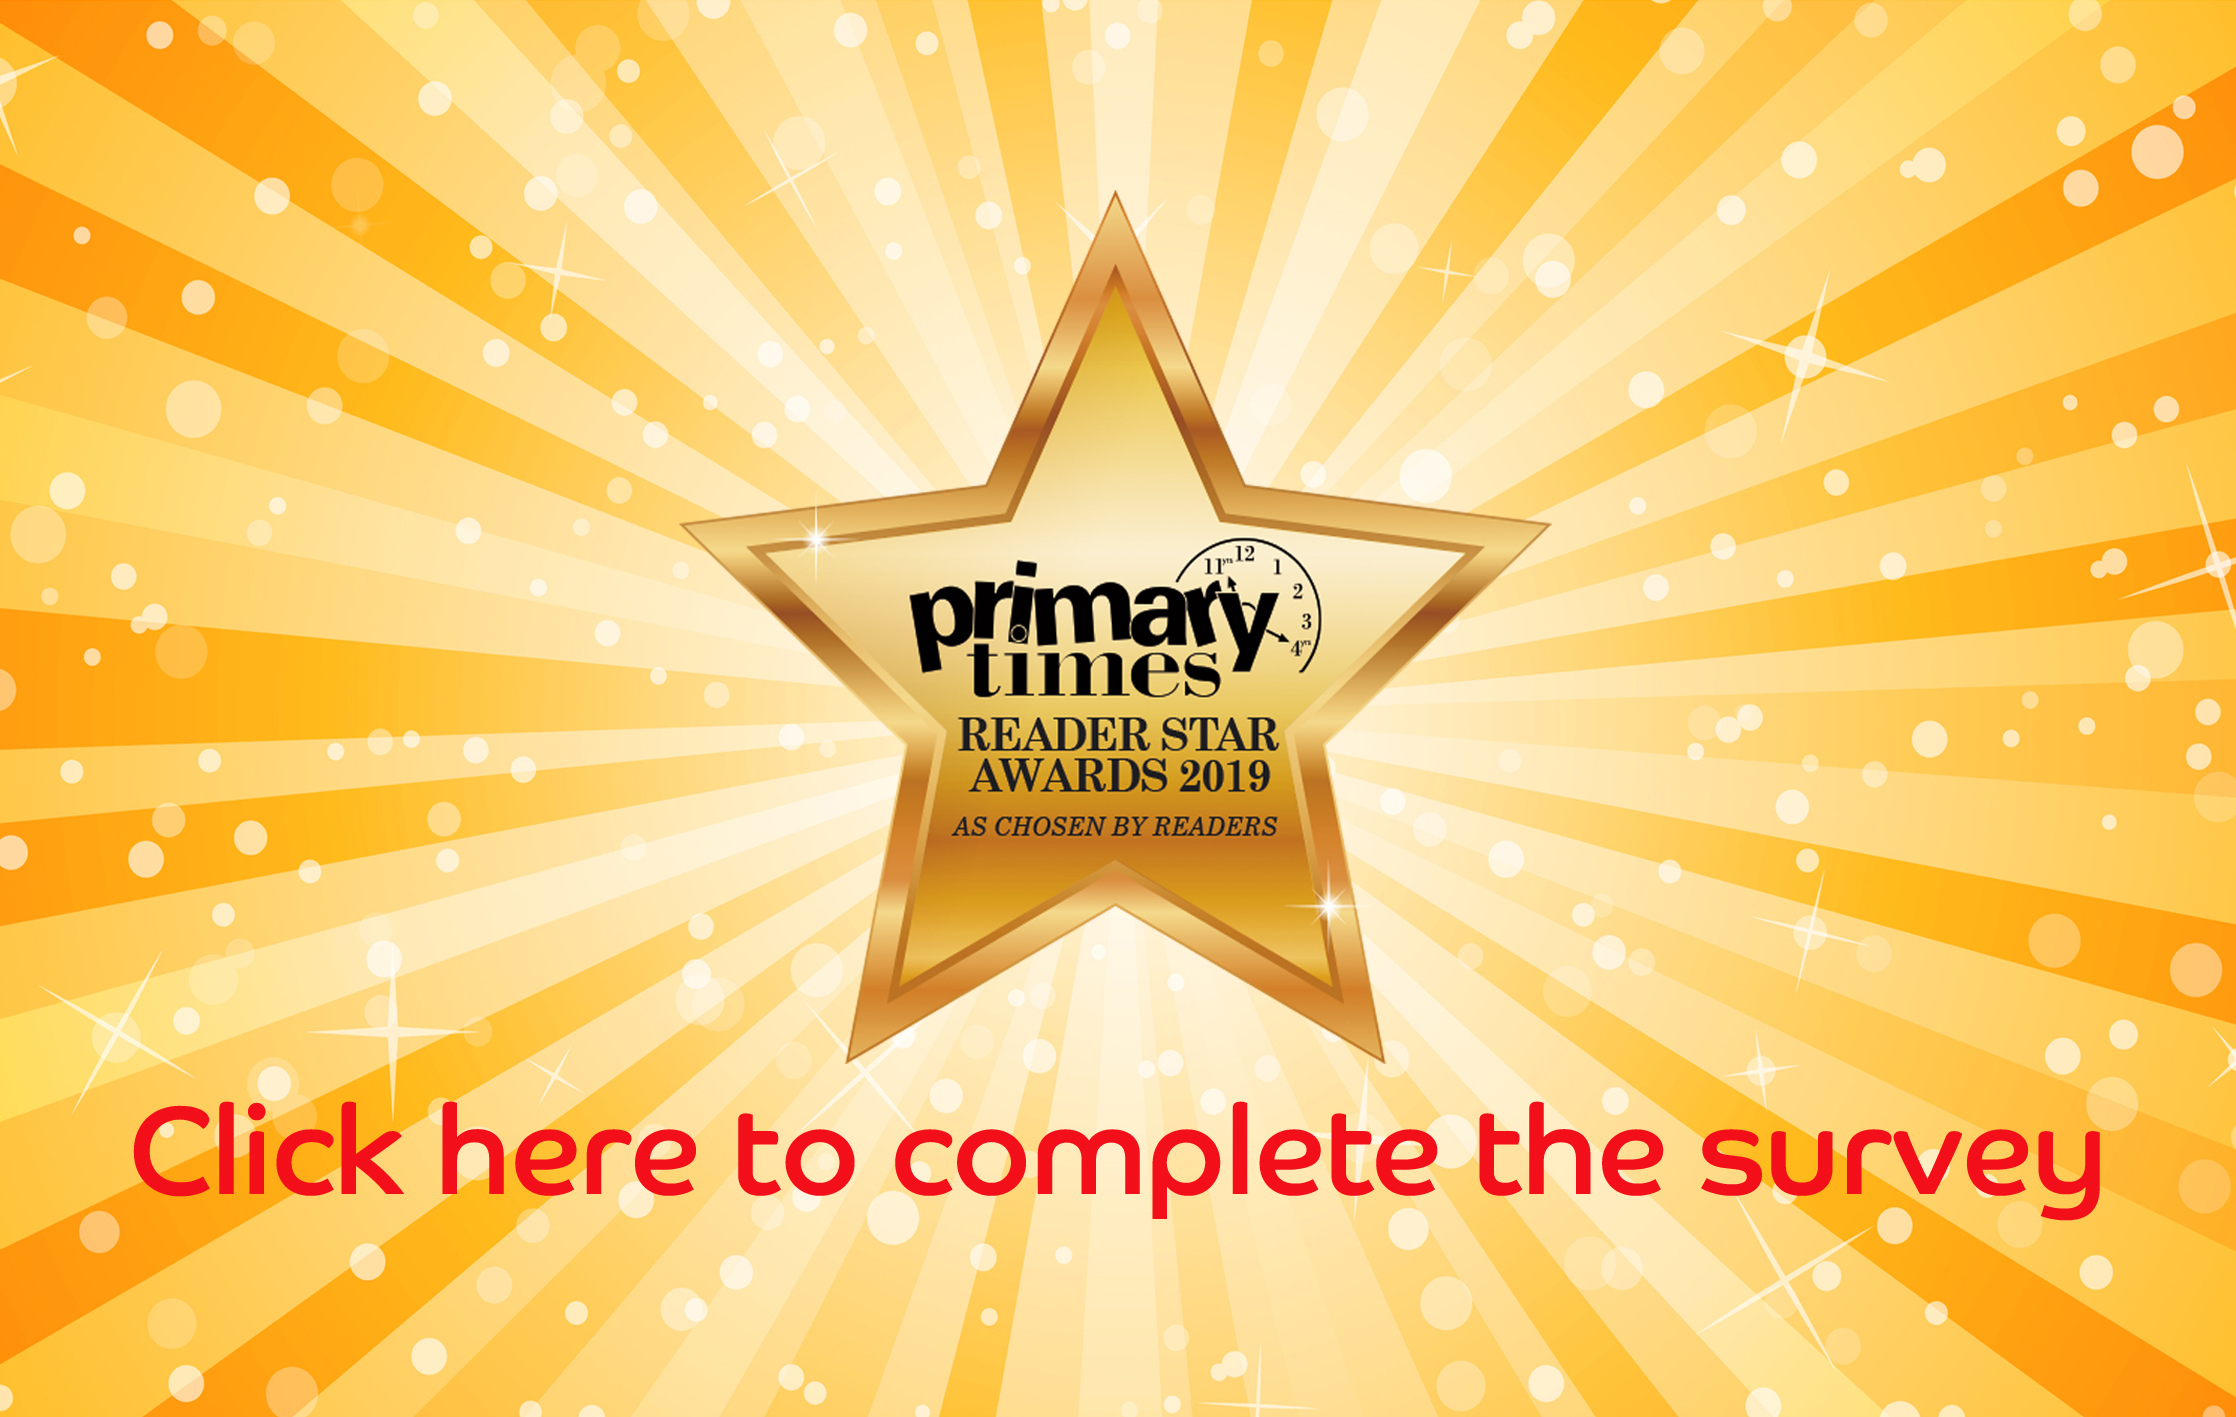 Primary Times Plymouth Reader Star Awards 2019